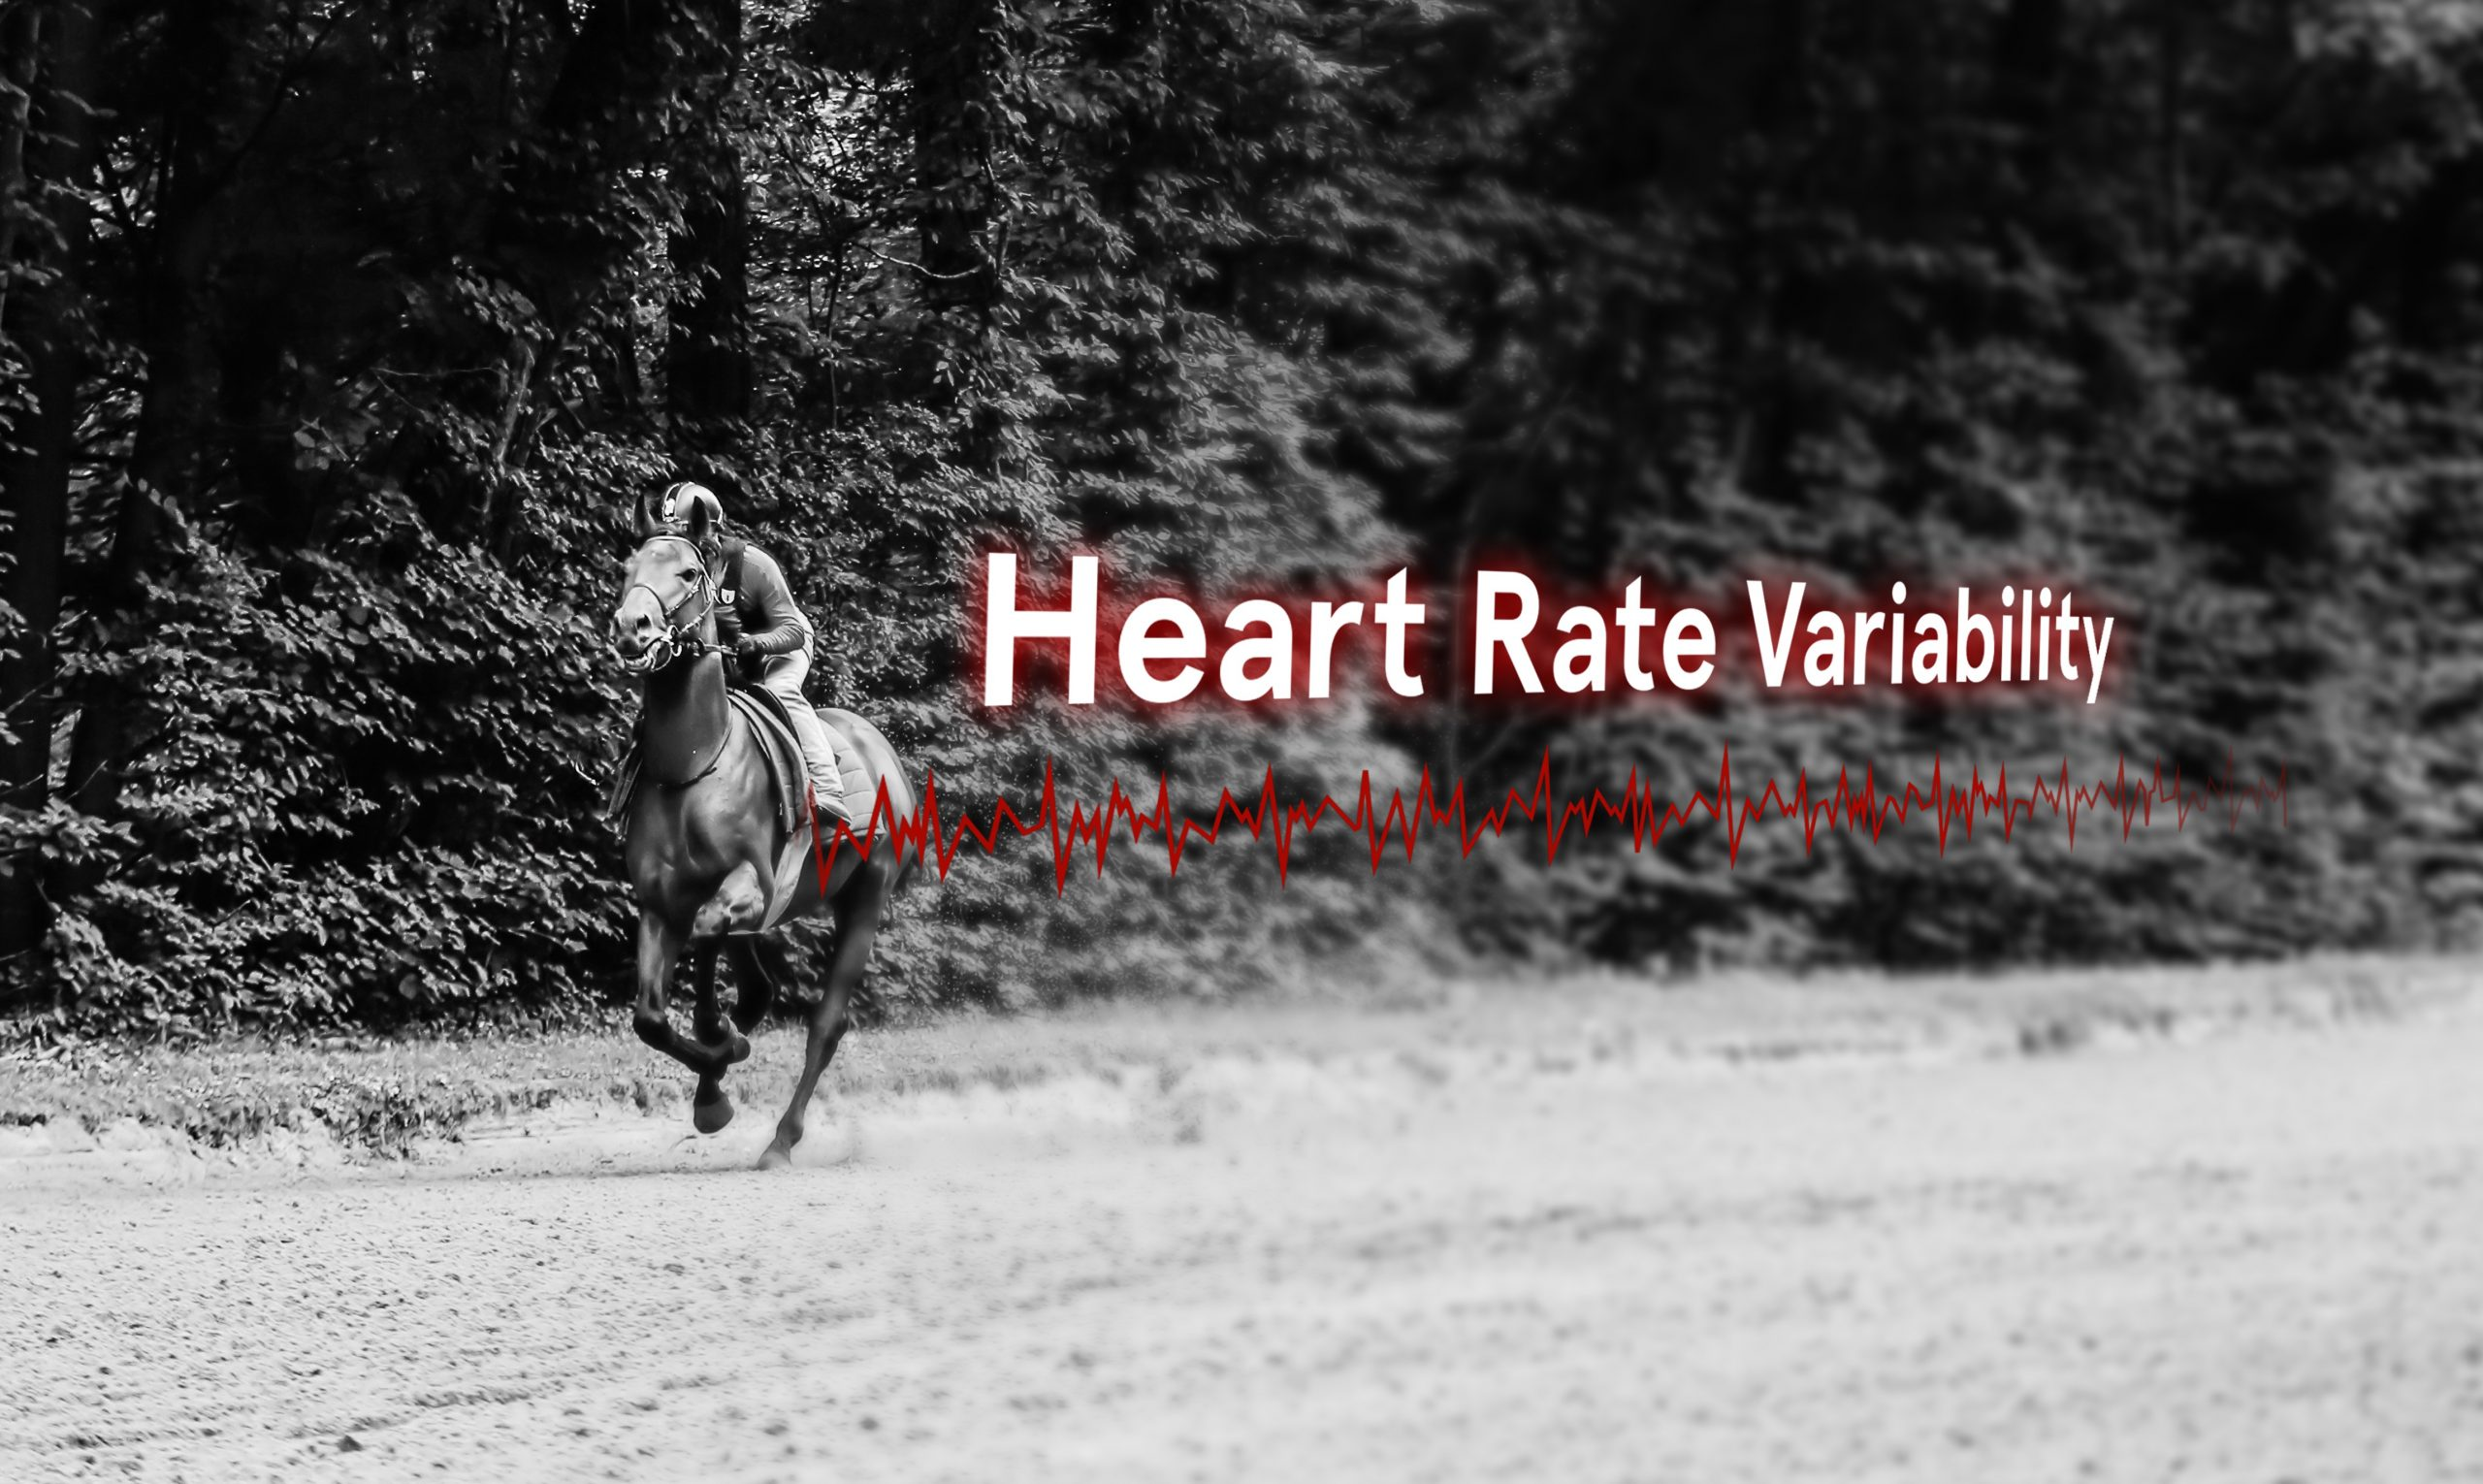 [INTERVIEW] HOW TO UNDERSTAND THE CARDIAC VARIABILITY